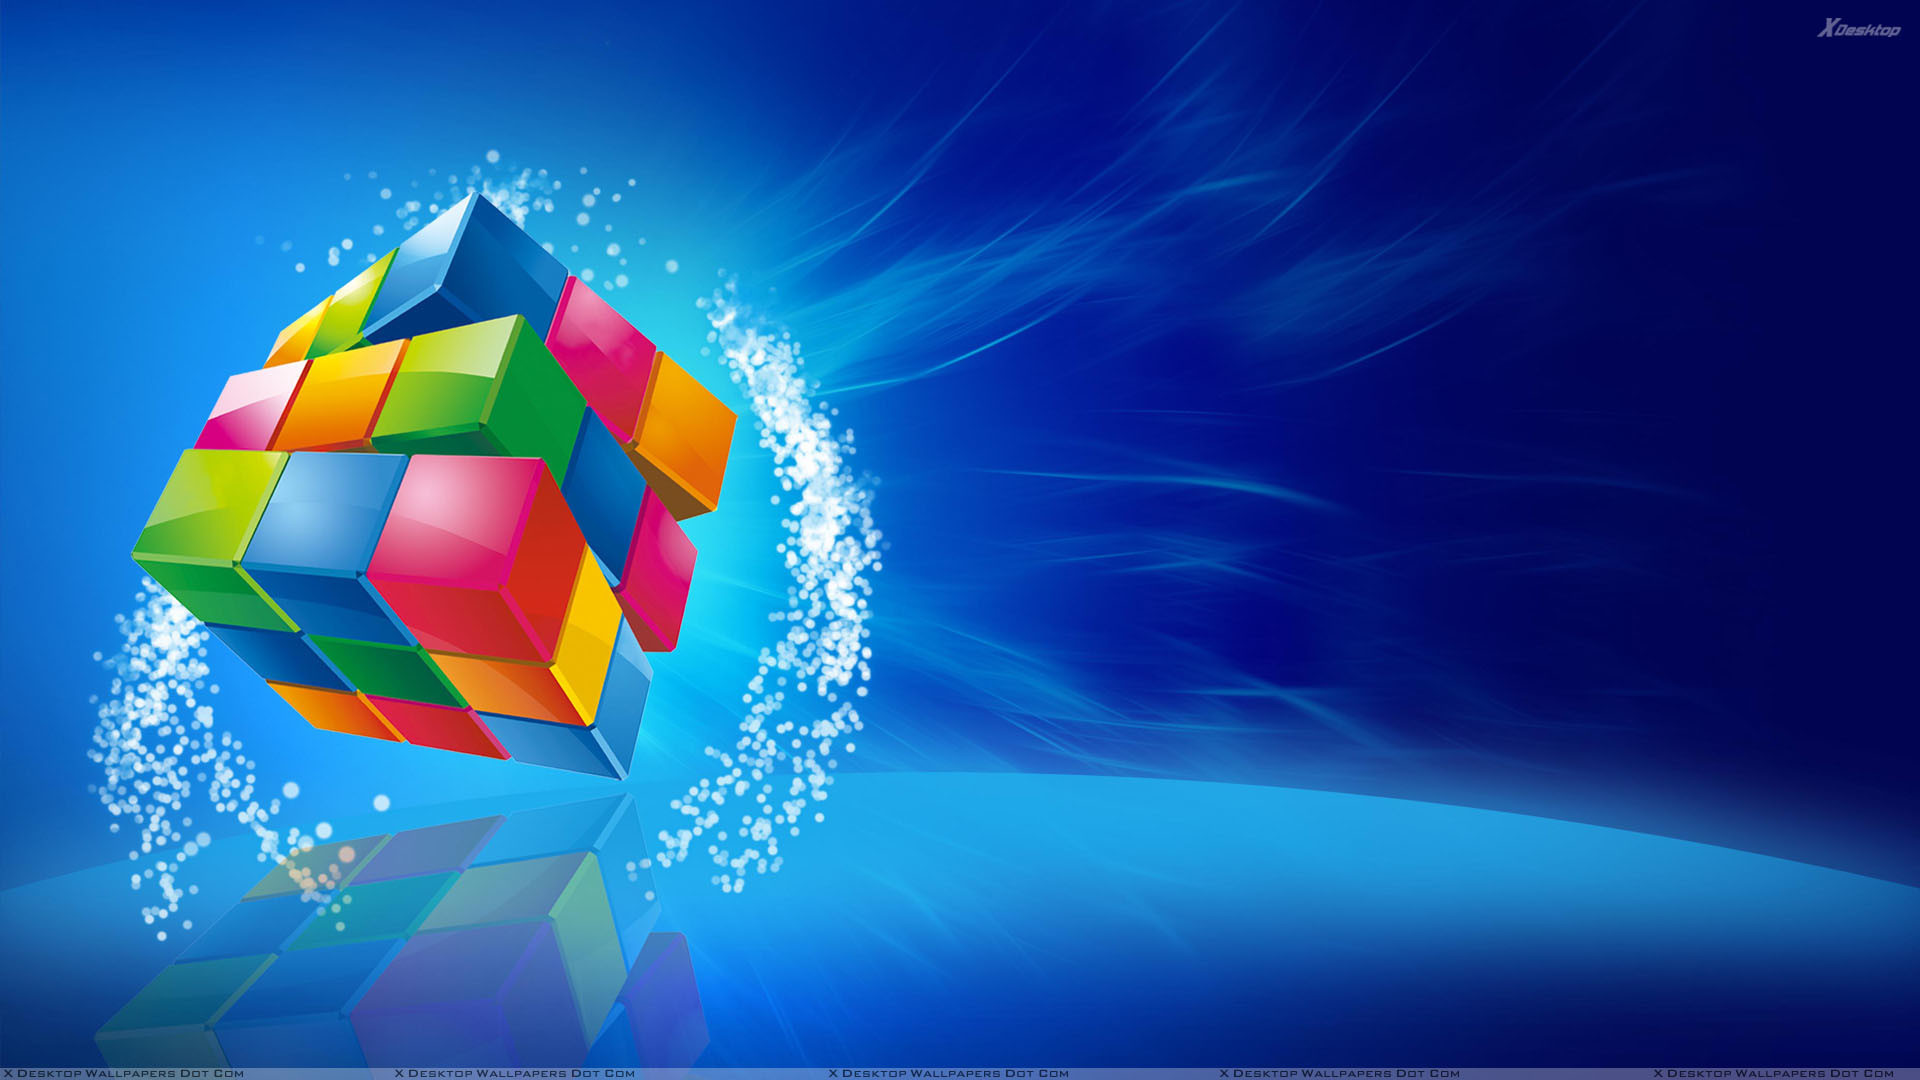 Res: 1920x1080, Color Cube On Blue Background 03 Jan 2018